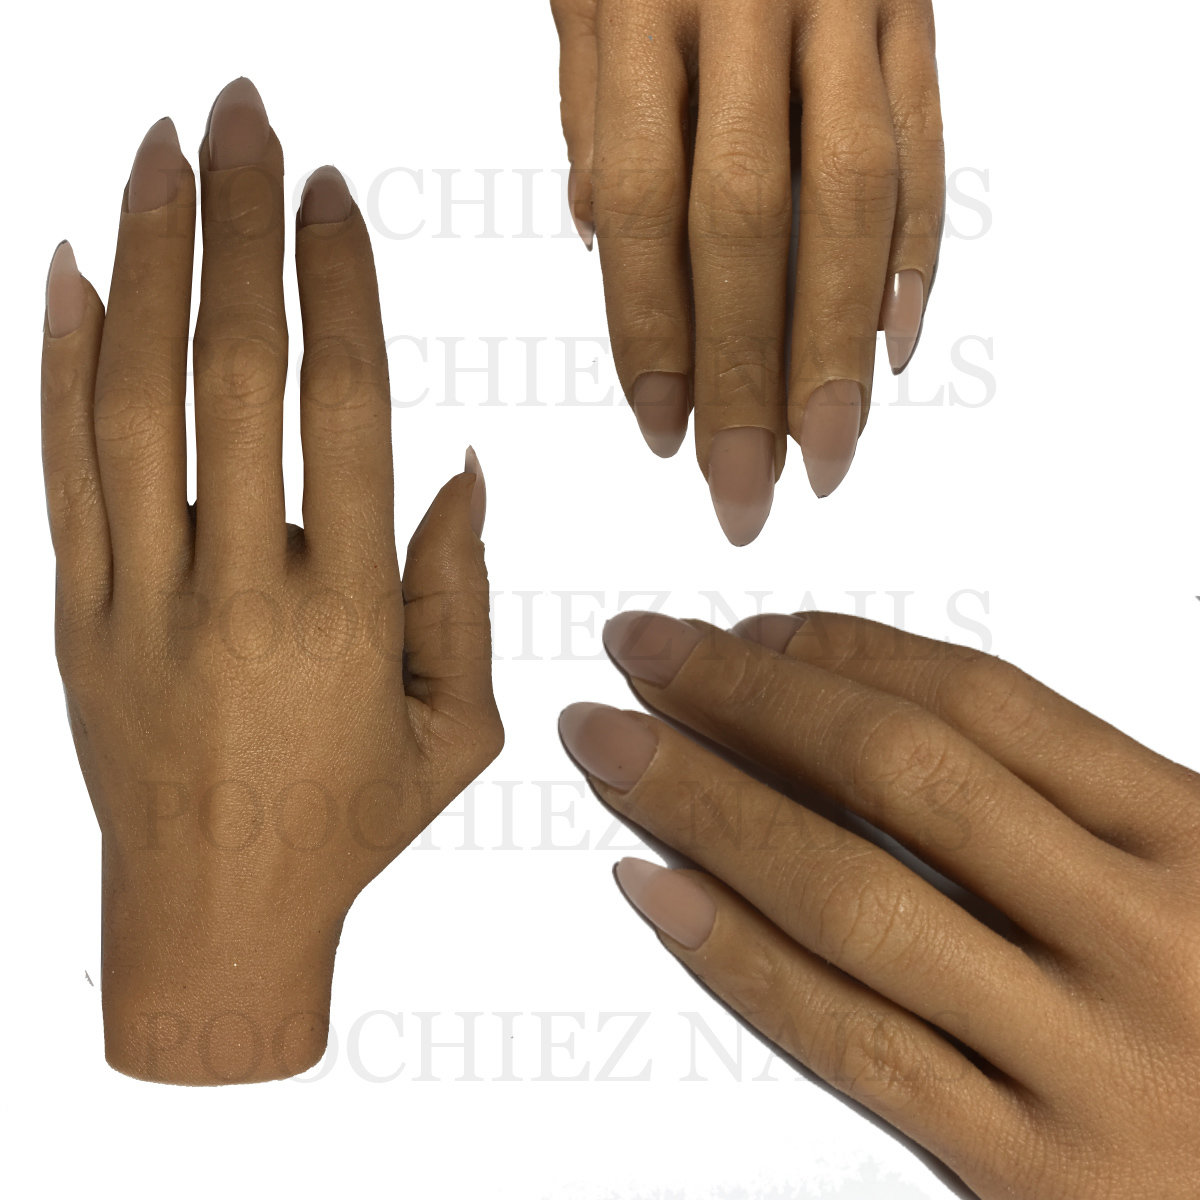 (H0) BELLA REALISTIC FULL PRACTICE HAND ( PLEASE READ THE DIRECTIONS & WATCH THE VIDEOS BELOW) WILL TAKE 5-8 DAYS TO PROCESS.